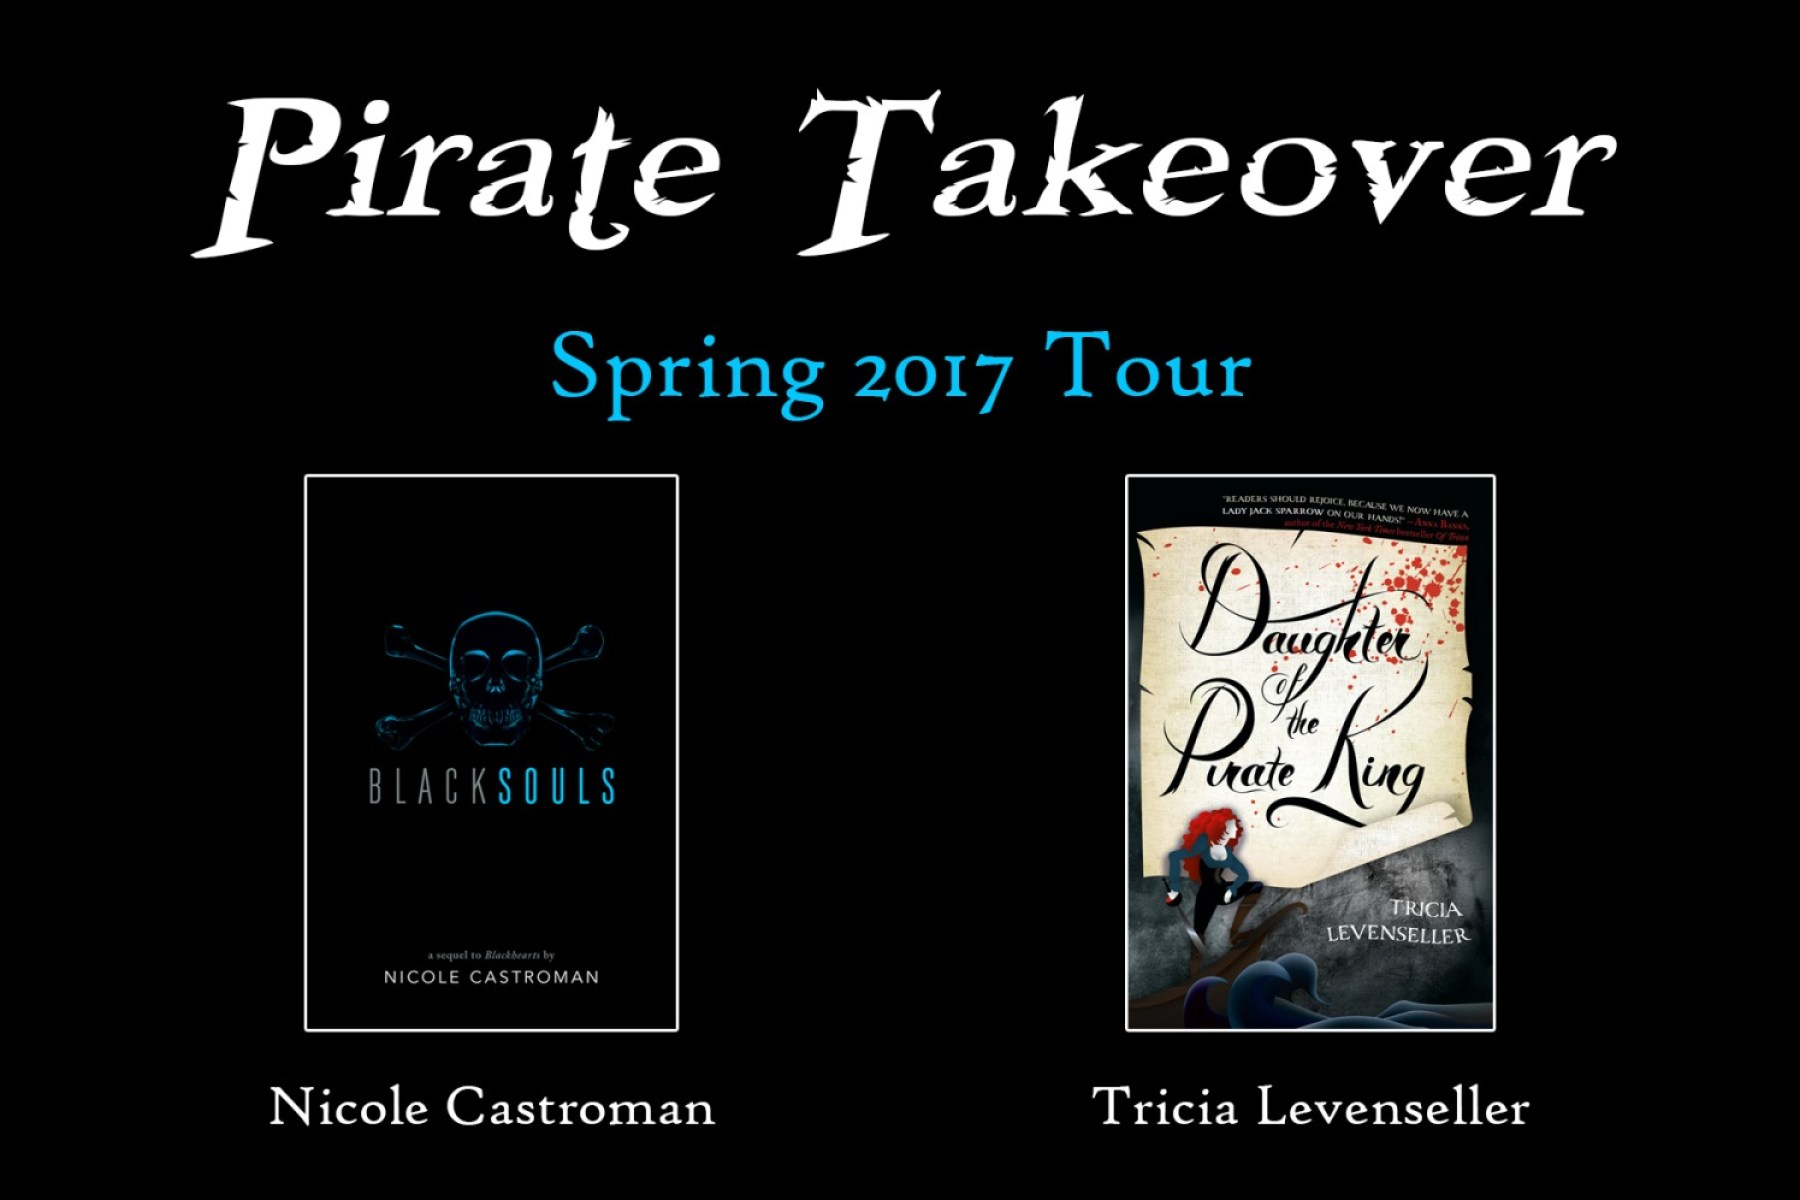 Pirate Takeover Tour